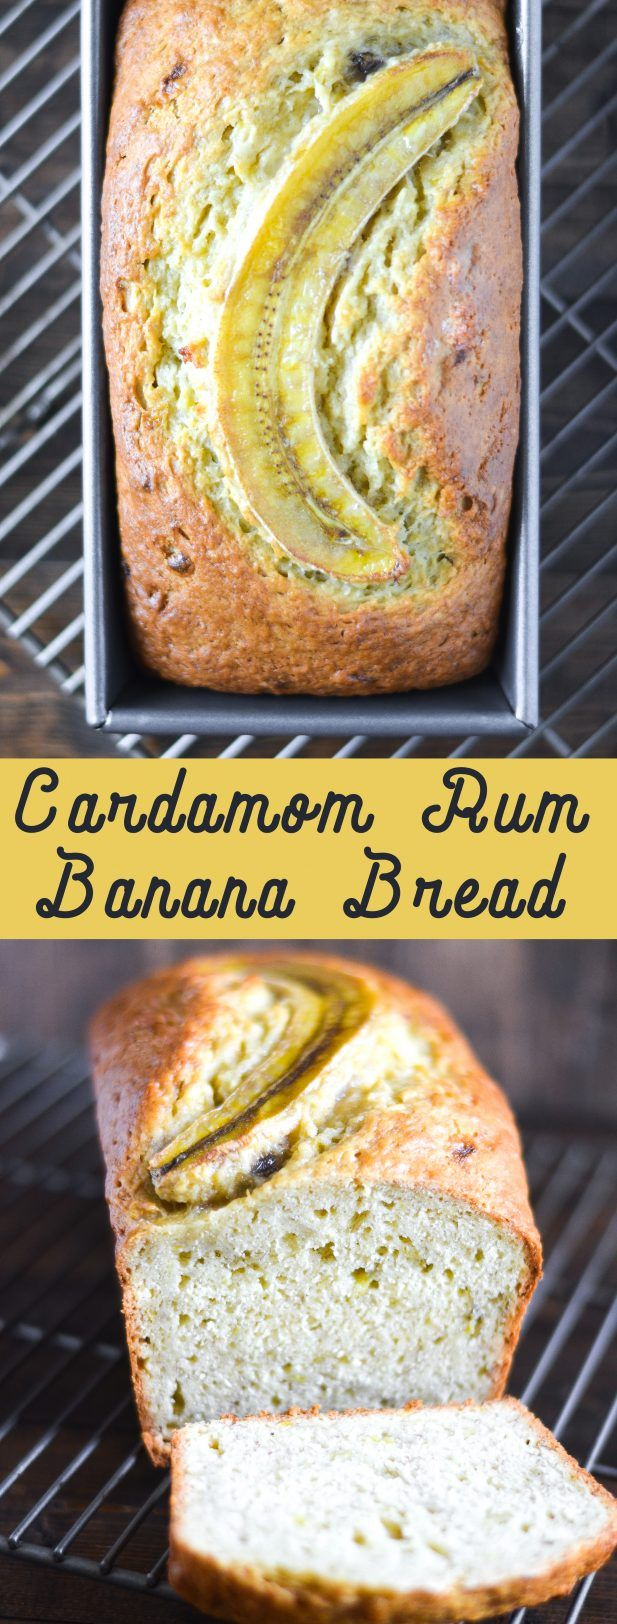 You can never have too many banana bread recipes, right? This Cardamom Rum Banana Bread is perfect for toasting and slathering with almond butter! via @mymoderncookery